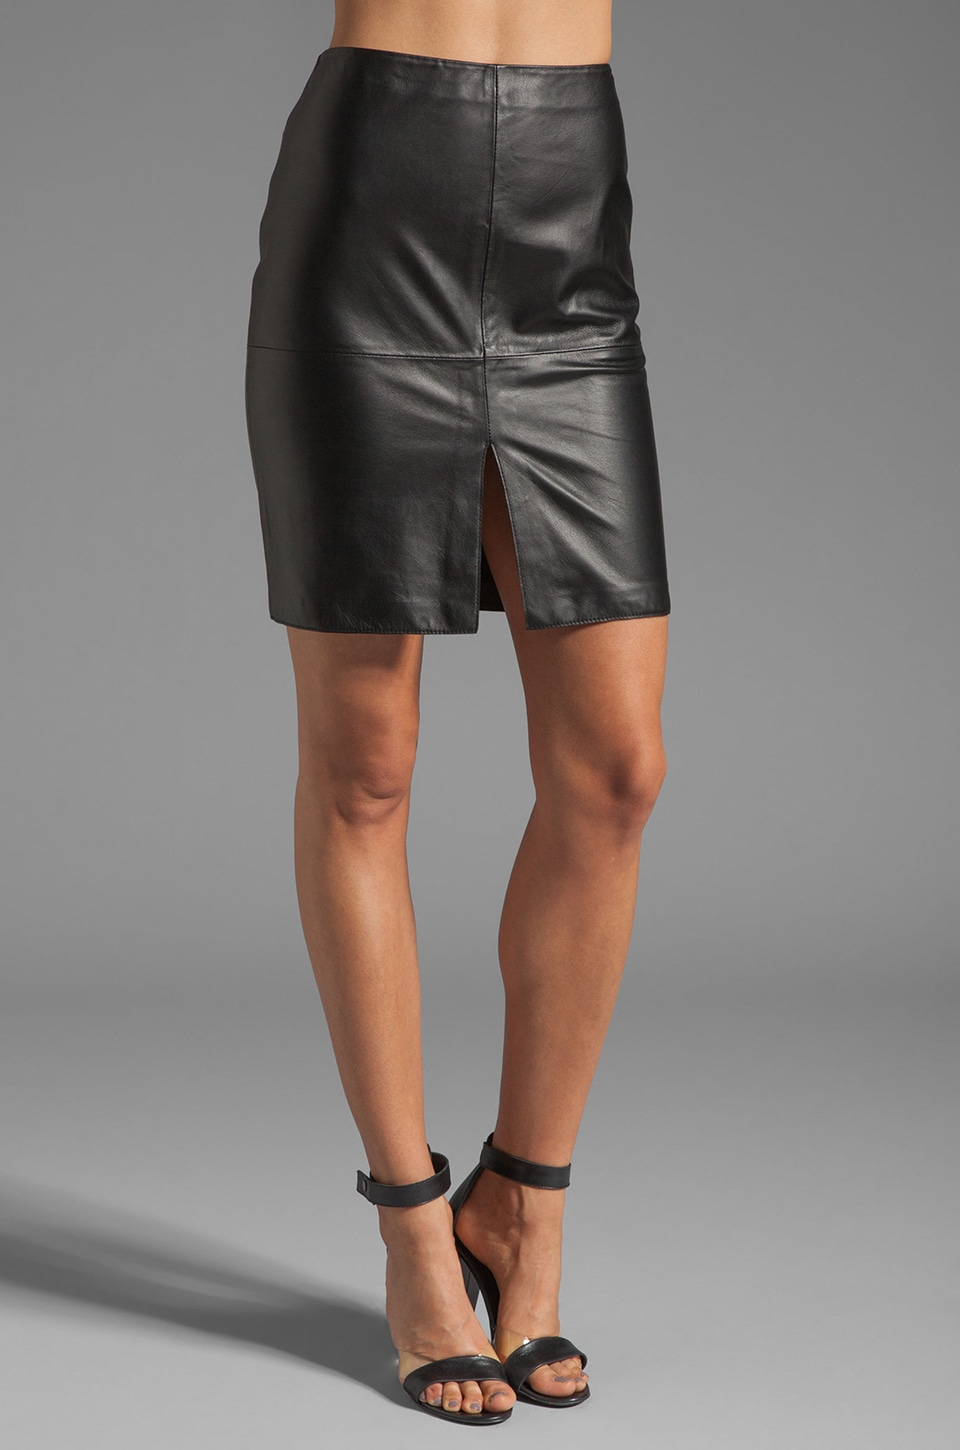 Susana Monaco Adel Leather Skirt in Black